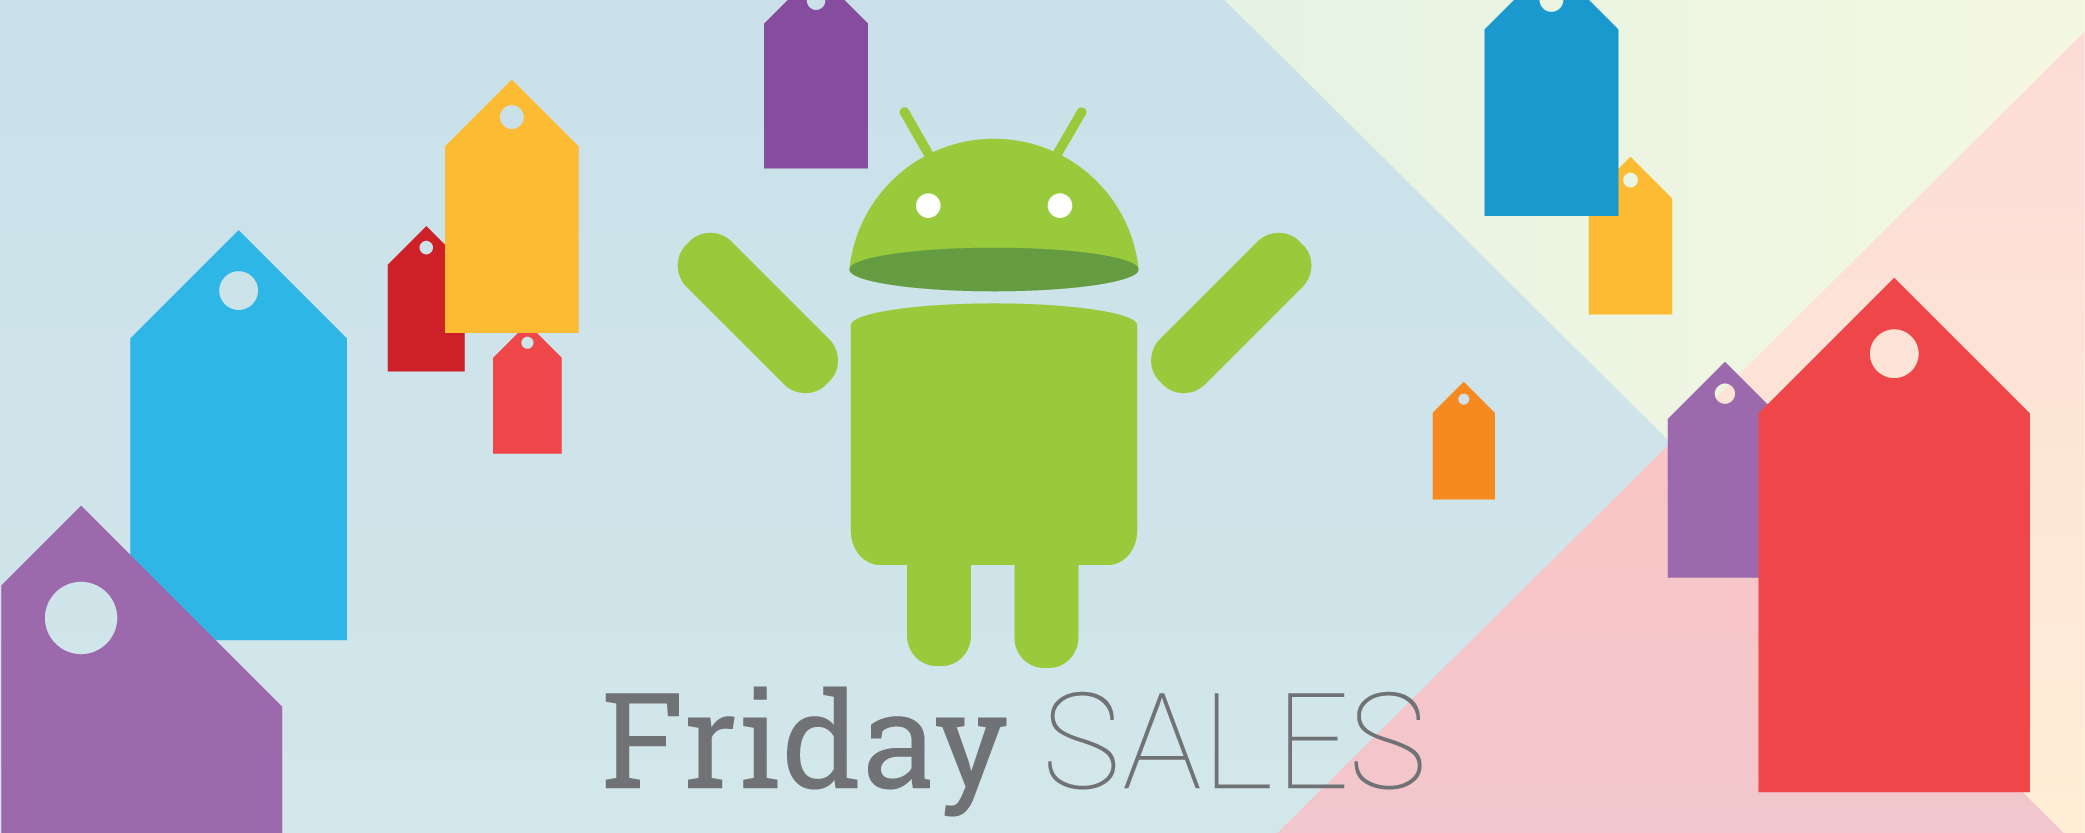 28 temporarily free and 43 on-sale apps and games for Friday